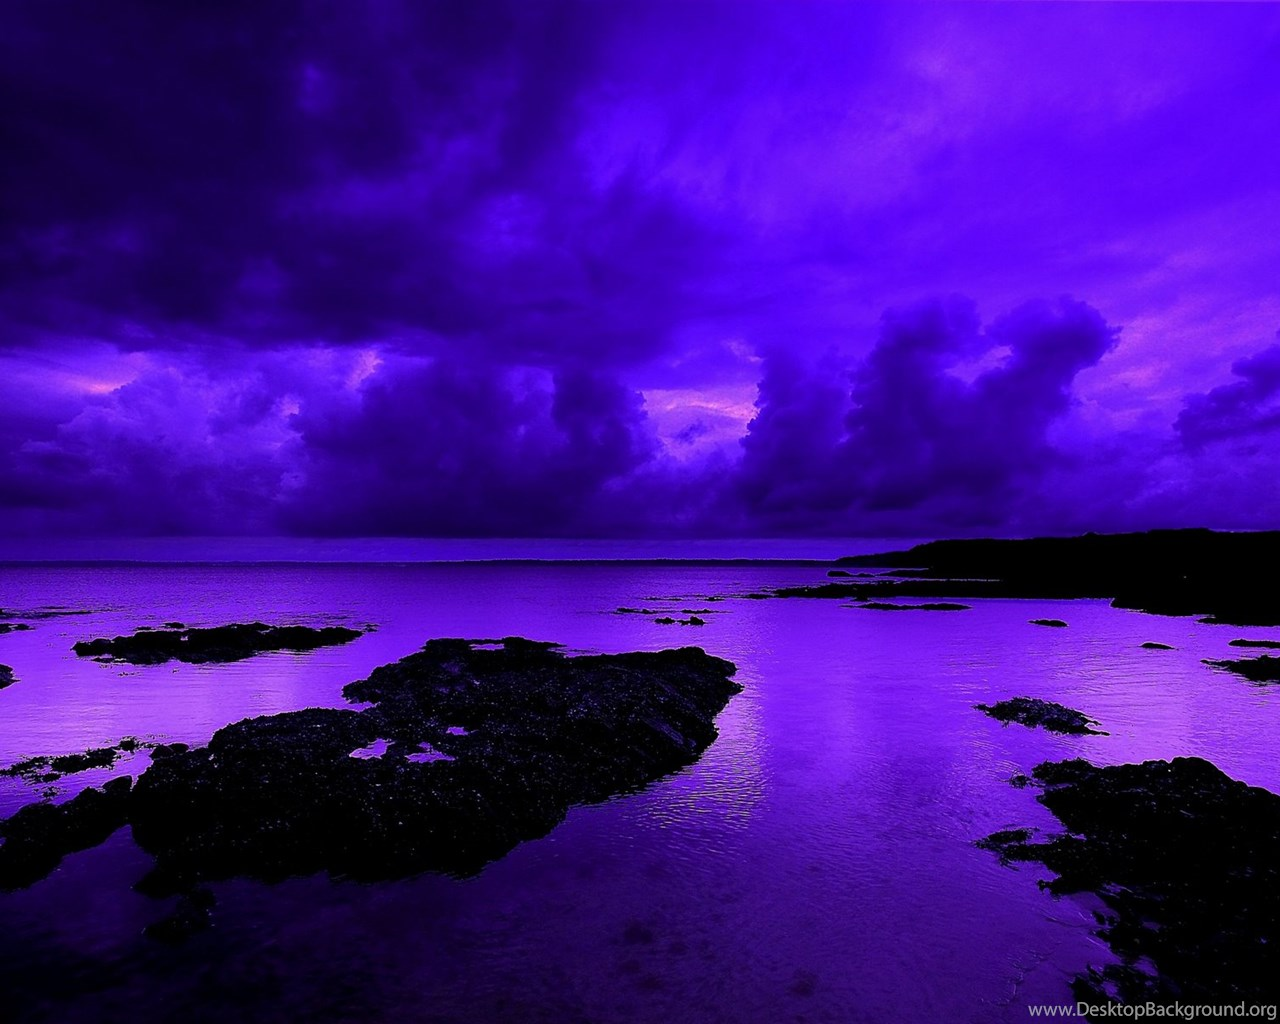 High Resolution Wallpaper: Violet Backgrounds Wallpaper, High Definition, High